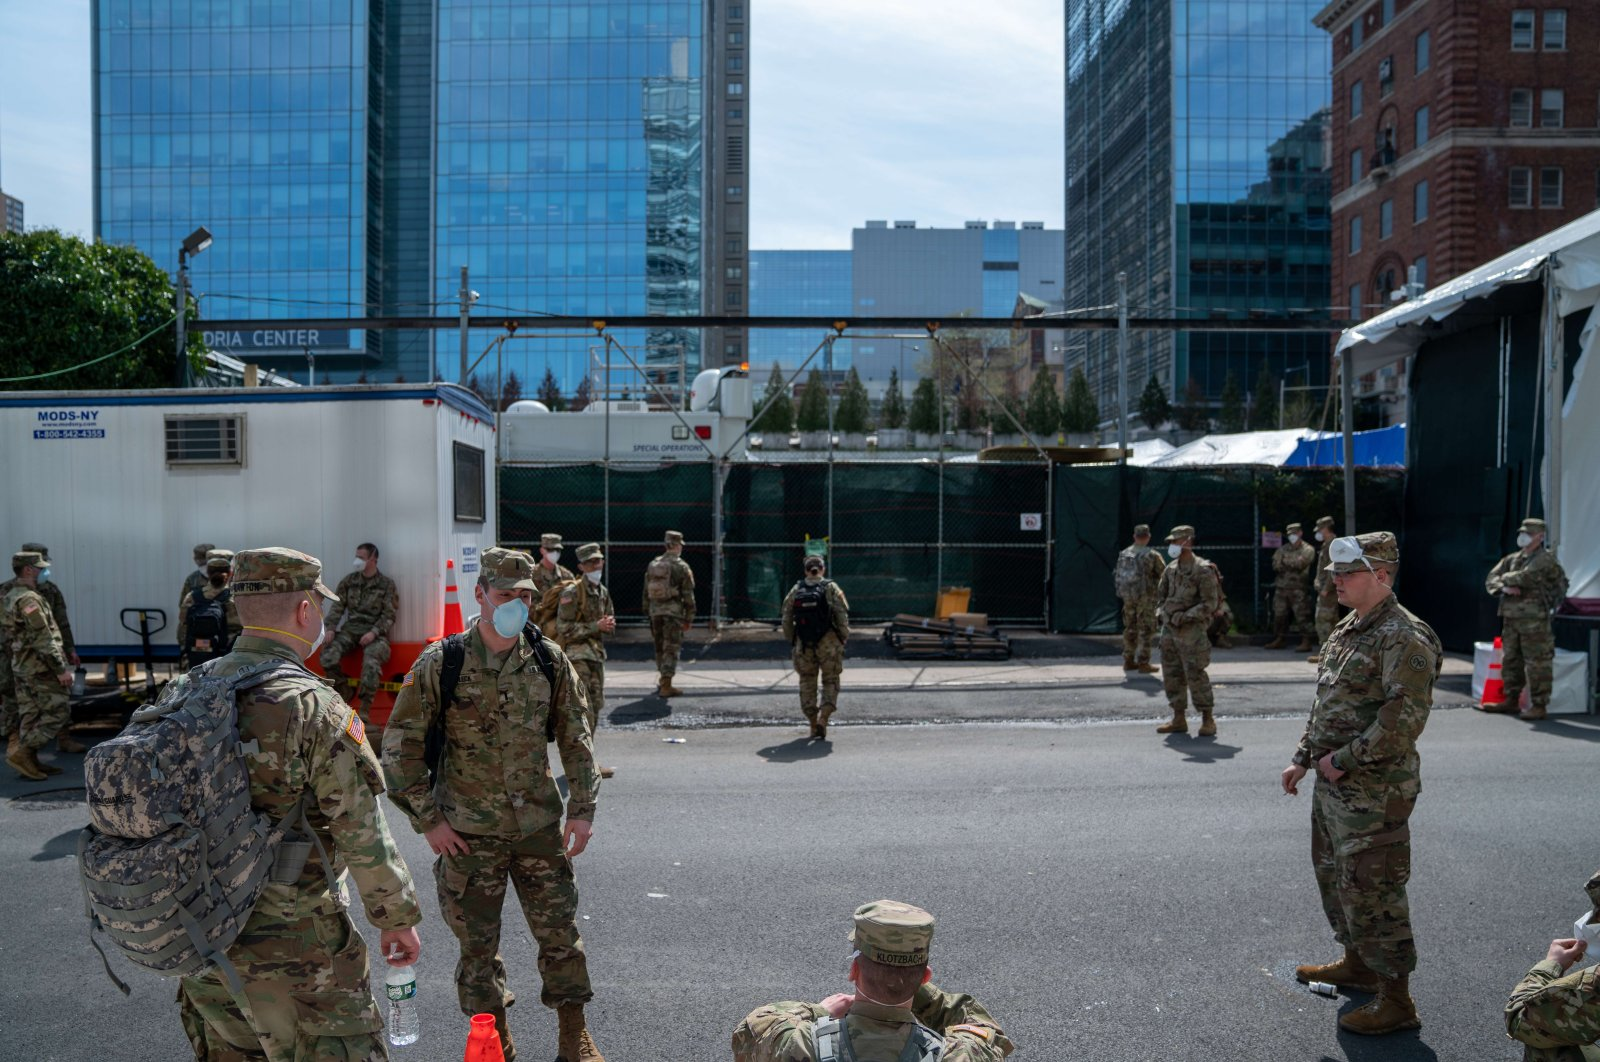 A group of soldiers on a side street behind the medical examiners office, New York, April 7, 2020. (AFP Photo)